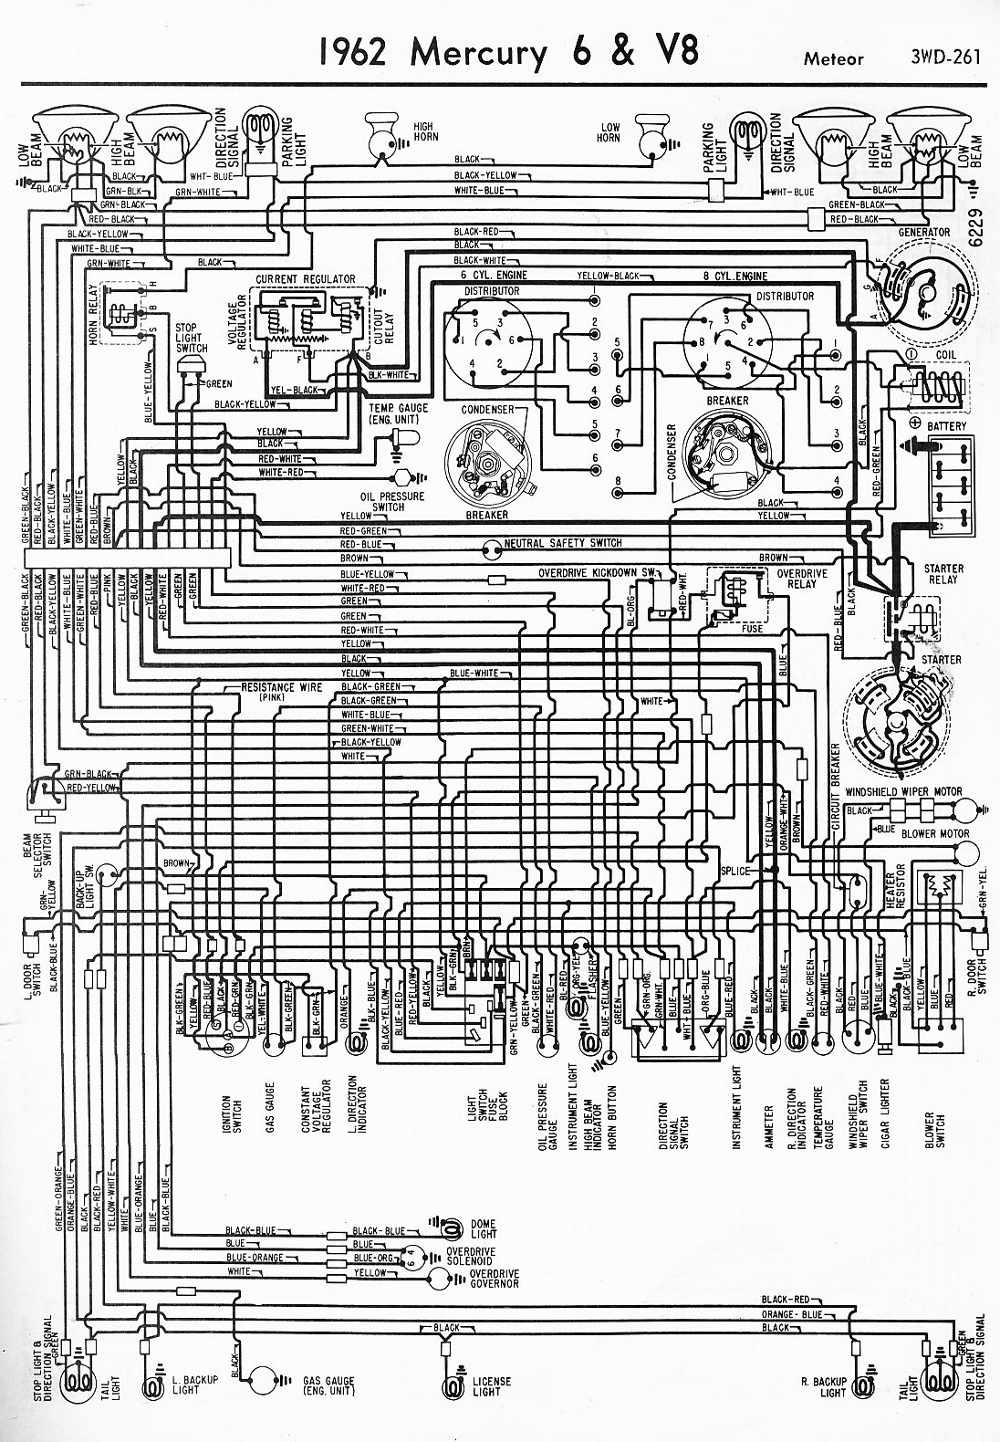 1962+Mercury+6+and+V8+Meteor+Wiring+Diagram 1962 mercury 6 and v8 meteor wiring diagram panel switch wiring